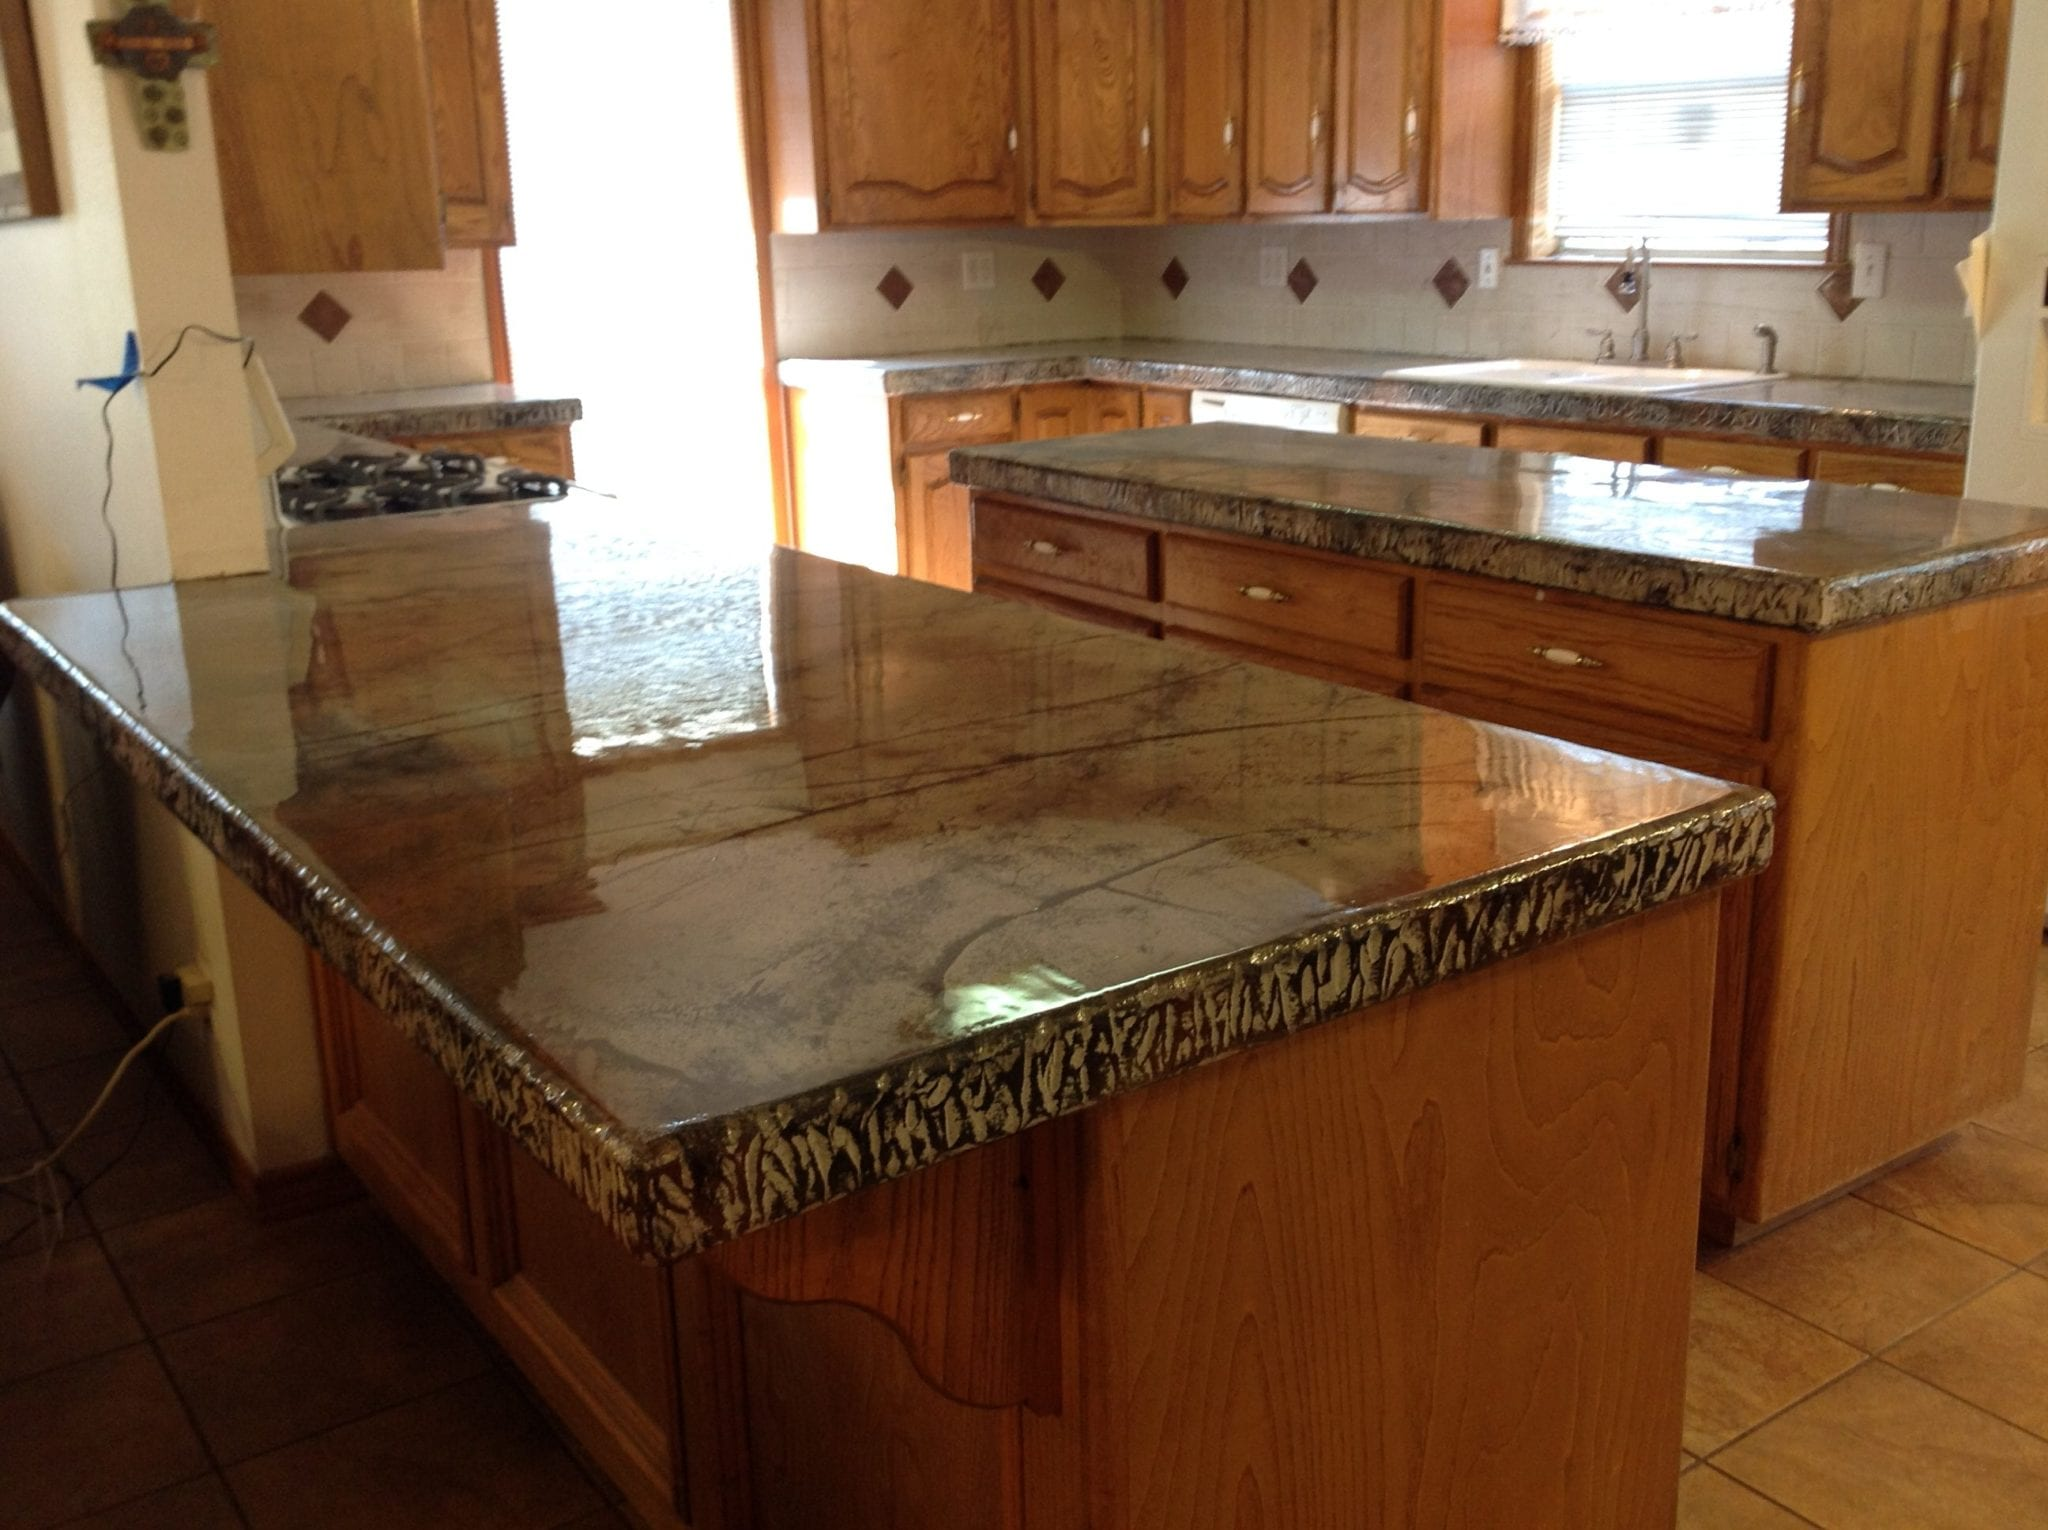 resurfaced tile countertops